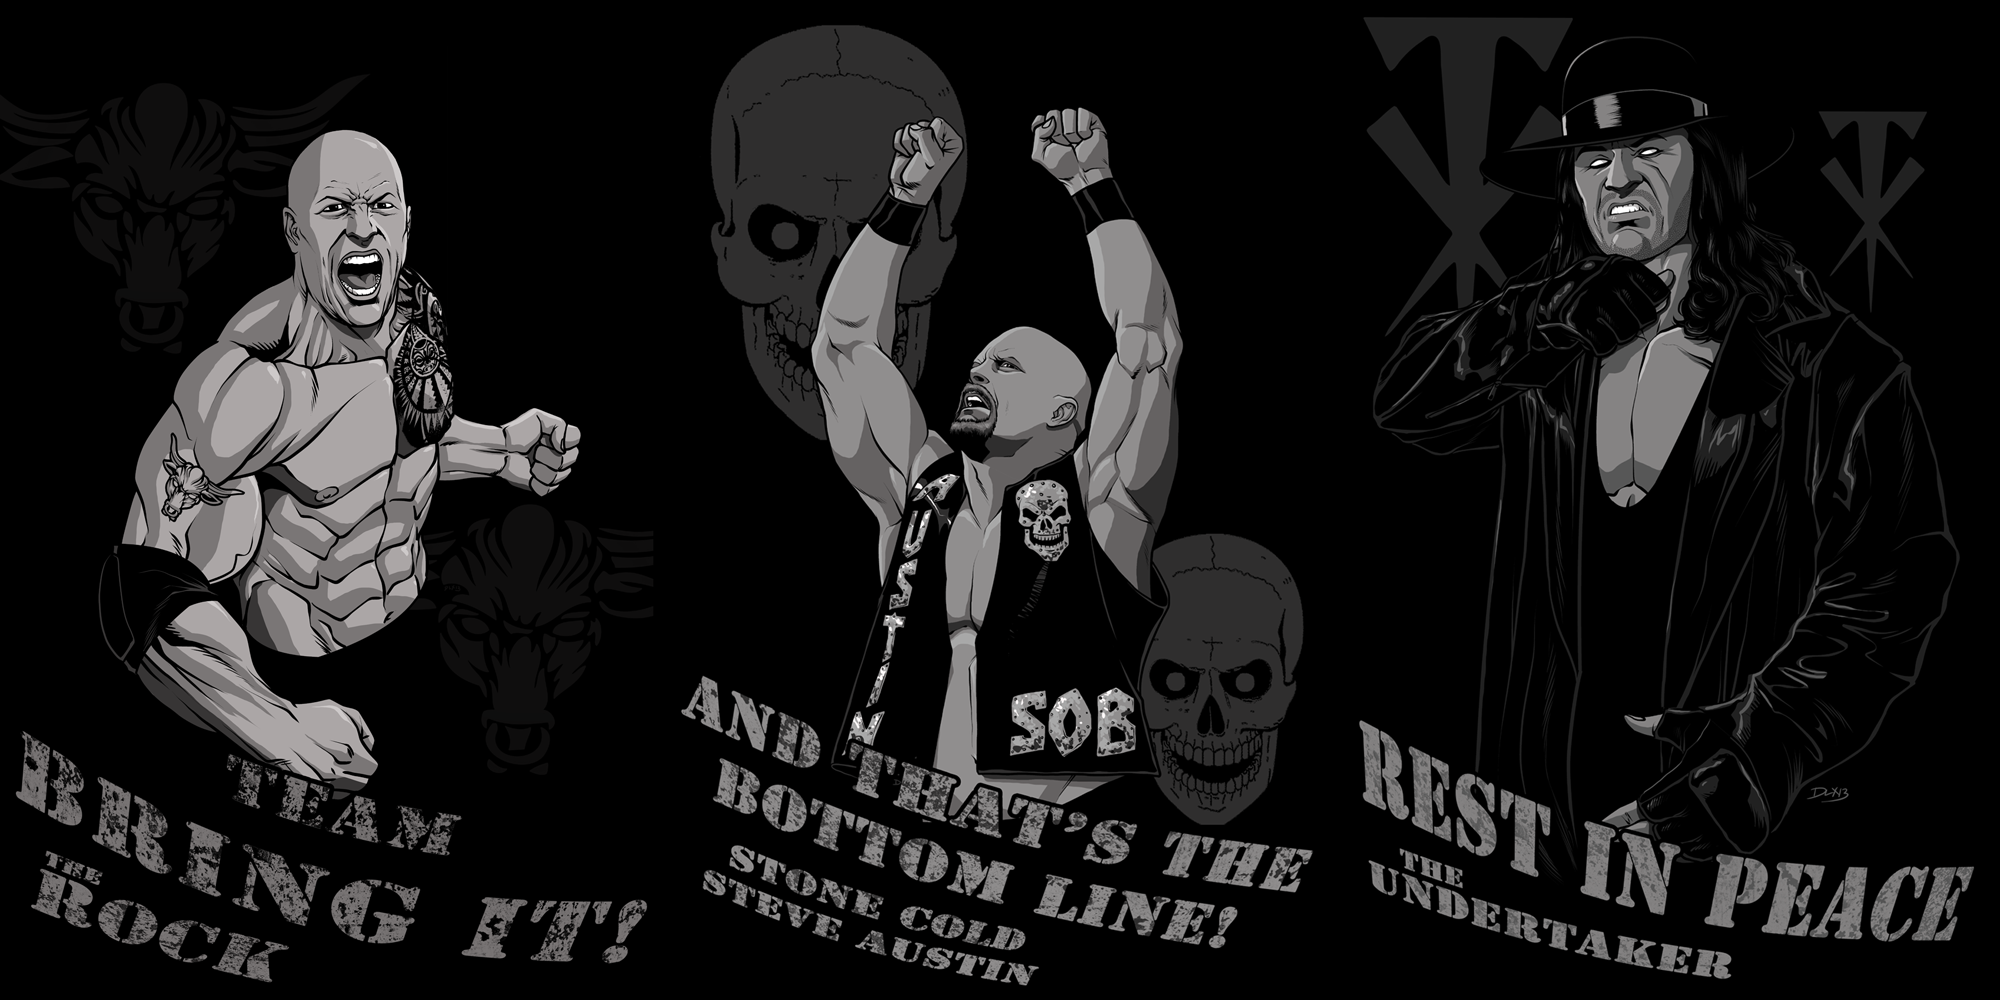 Rock, Stone Cold, and Undertak